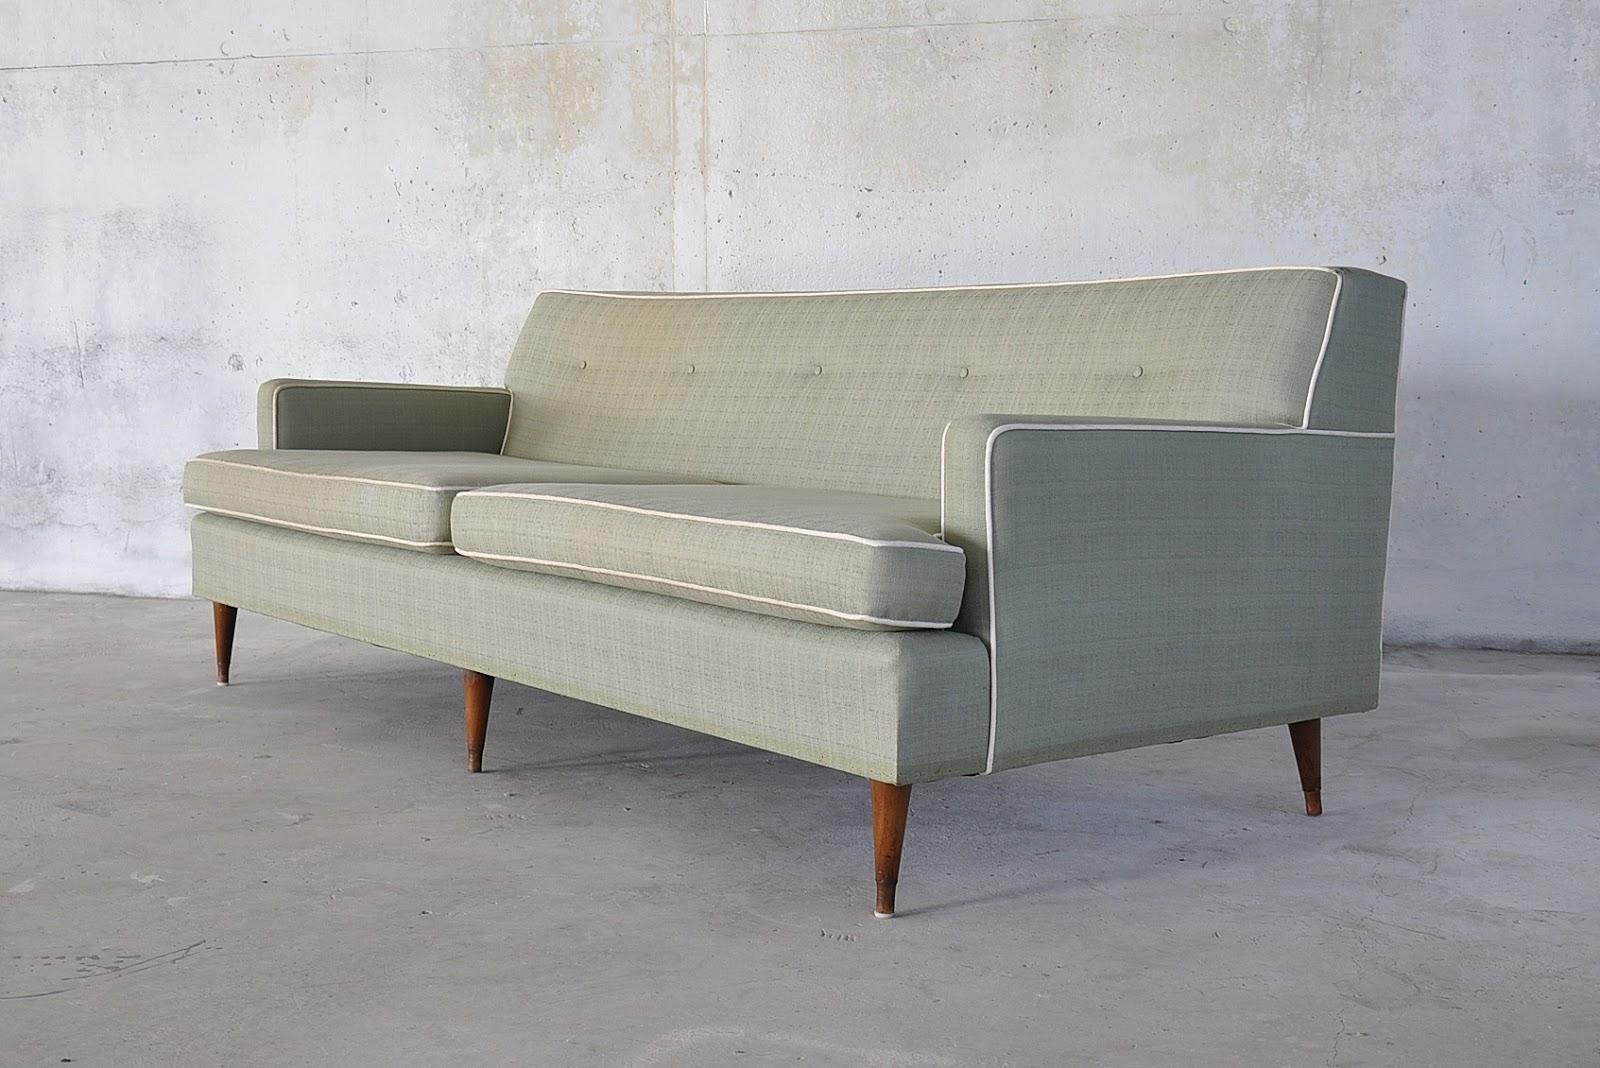 Sofas Center : Midcentury Sofas And Midy Danish Modern Sofa Couch Regarding Danish Modern Sofas (Image 16 of 20)